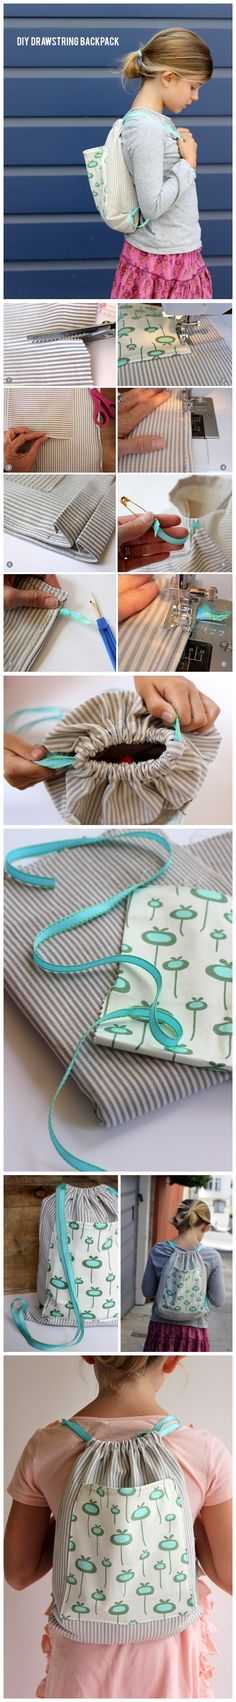 Diy Drawstring Backpack Tutorial. Easy directions.